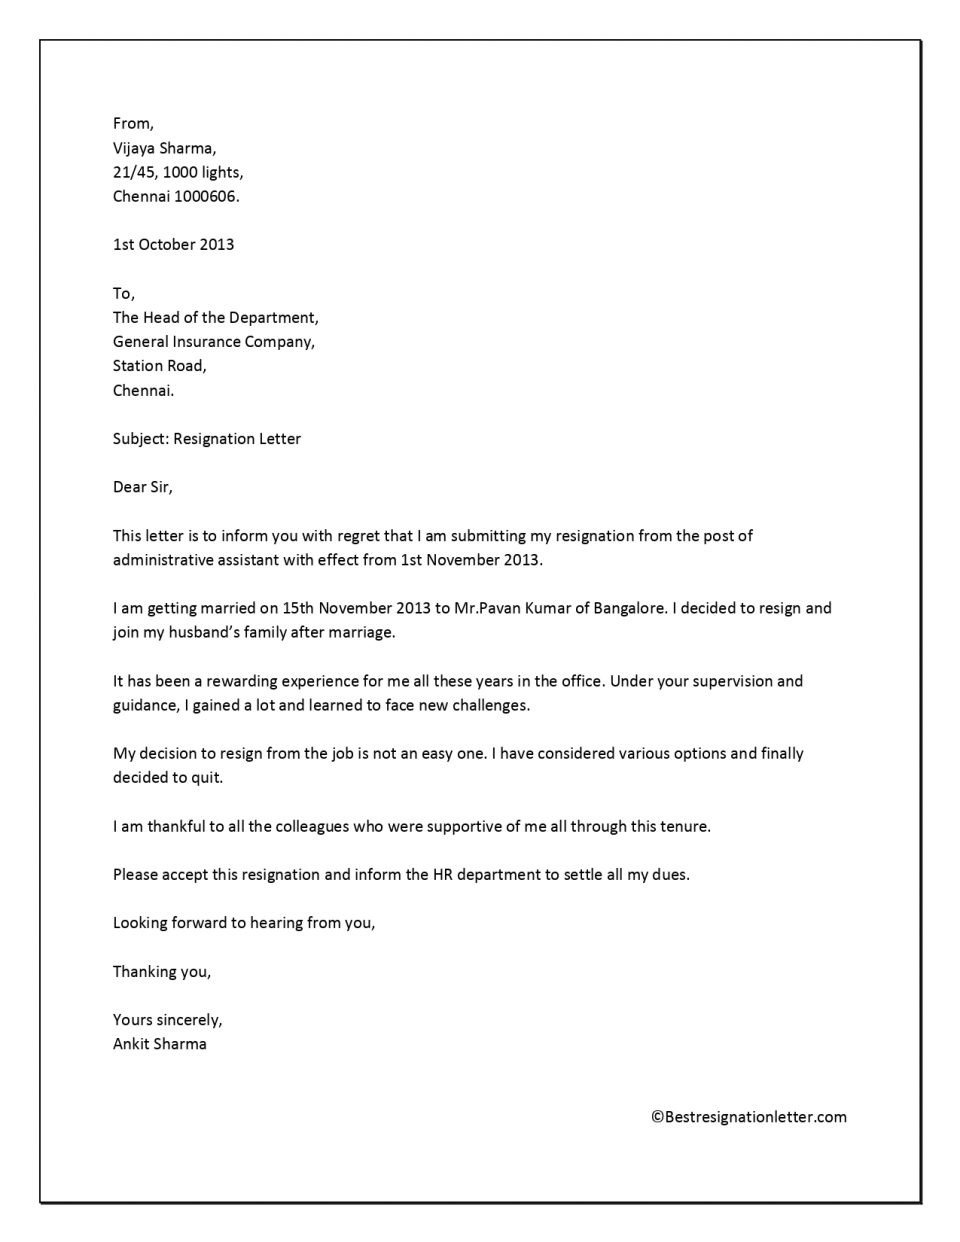 Resignation Letter Personal Reasons 17 Free Resignation Letter Pdf Doc Examples Nurse Ex